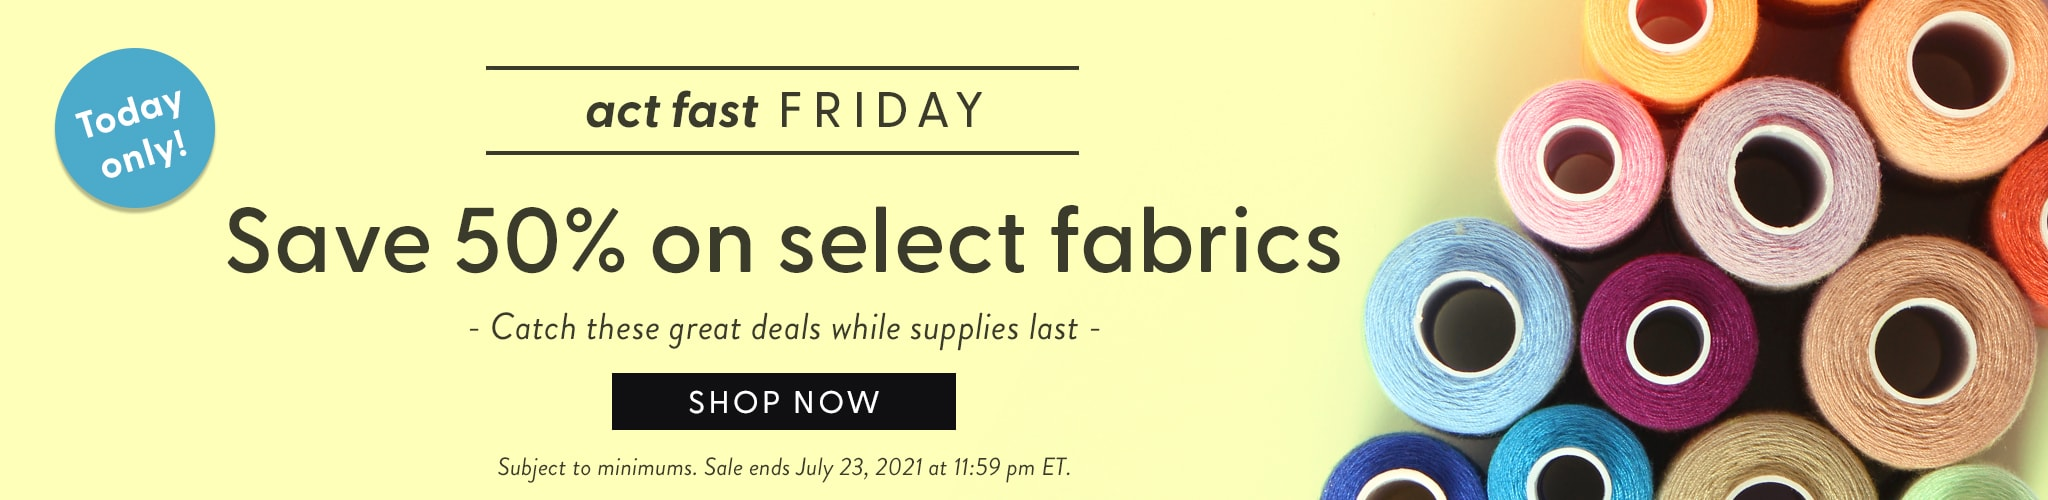 Act Fast Friday Save 50% on select fabrics. Catch these great deals while supplies last.